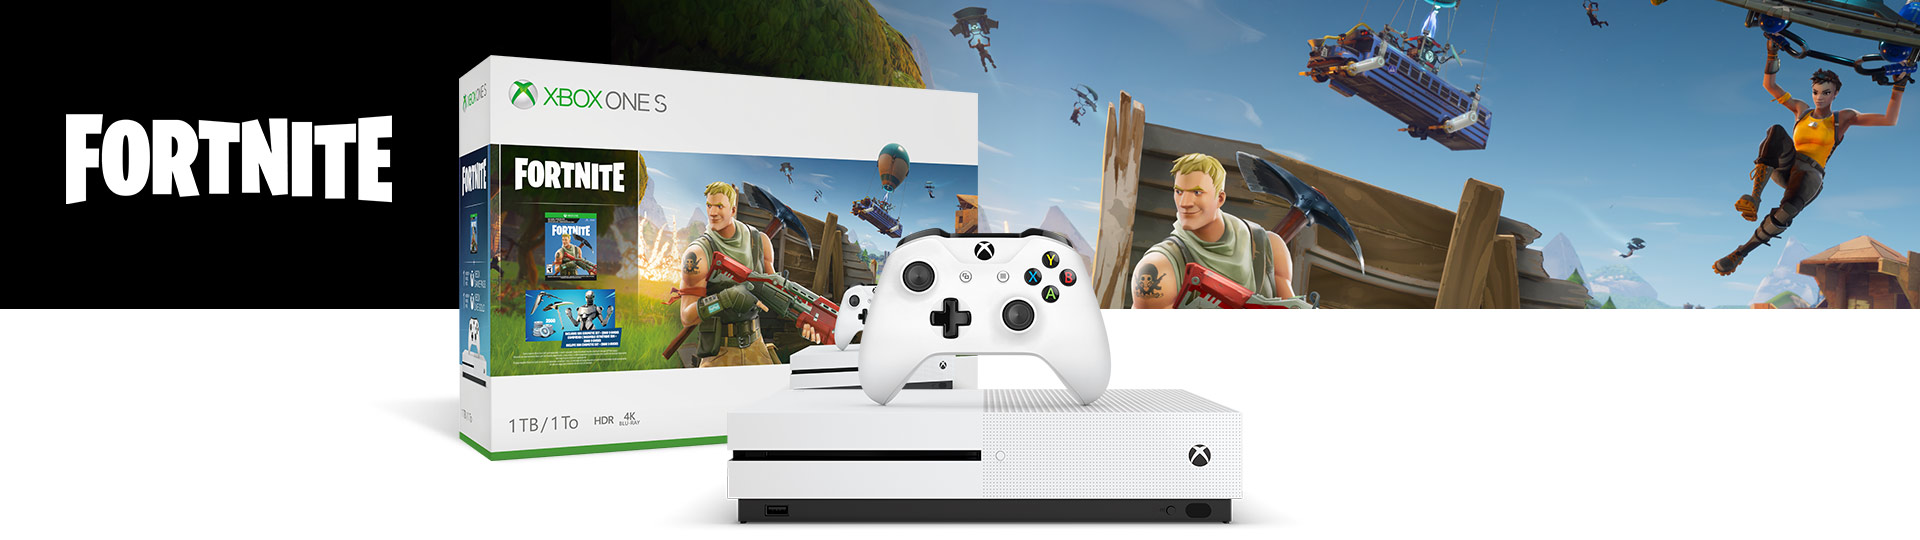 Xbox One S Fortnite Bundle (1TB) | Xbox